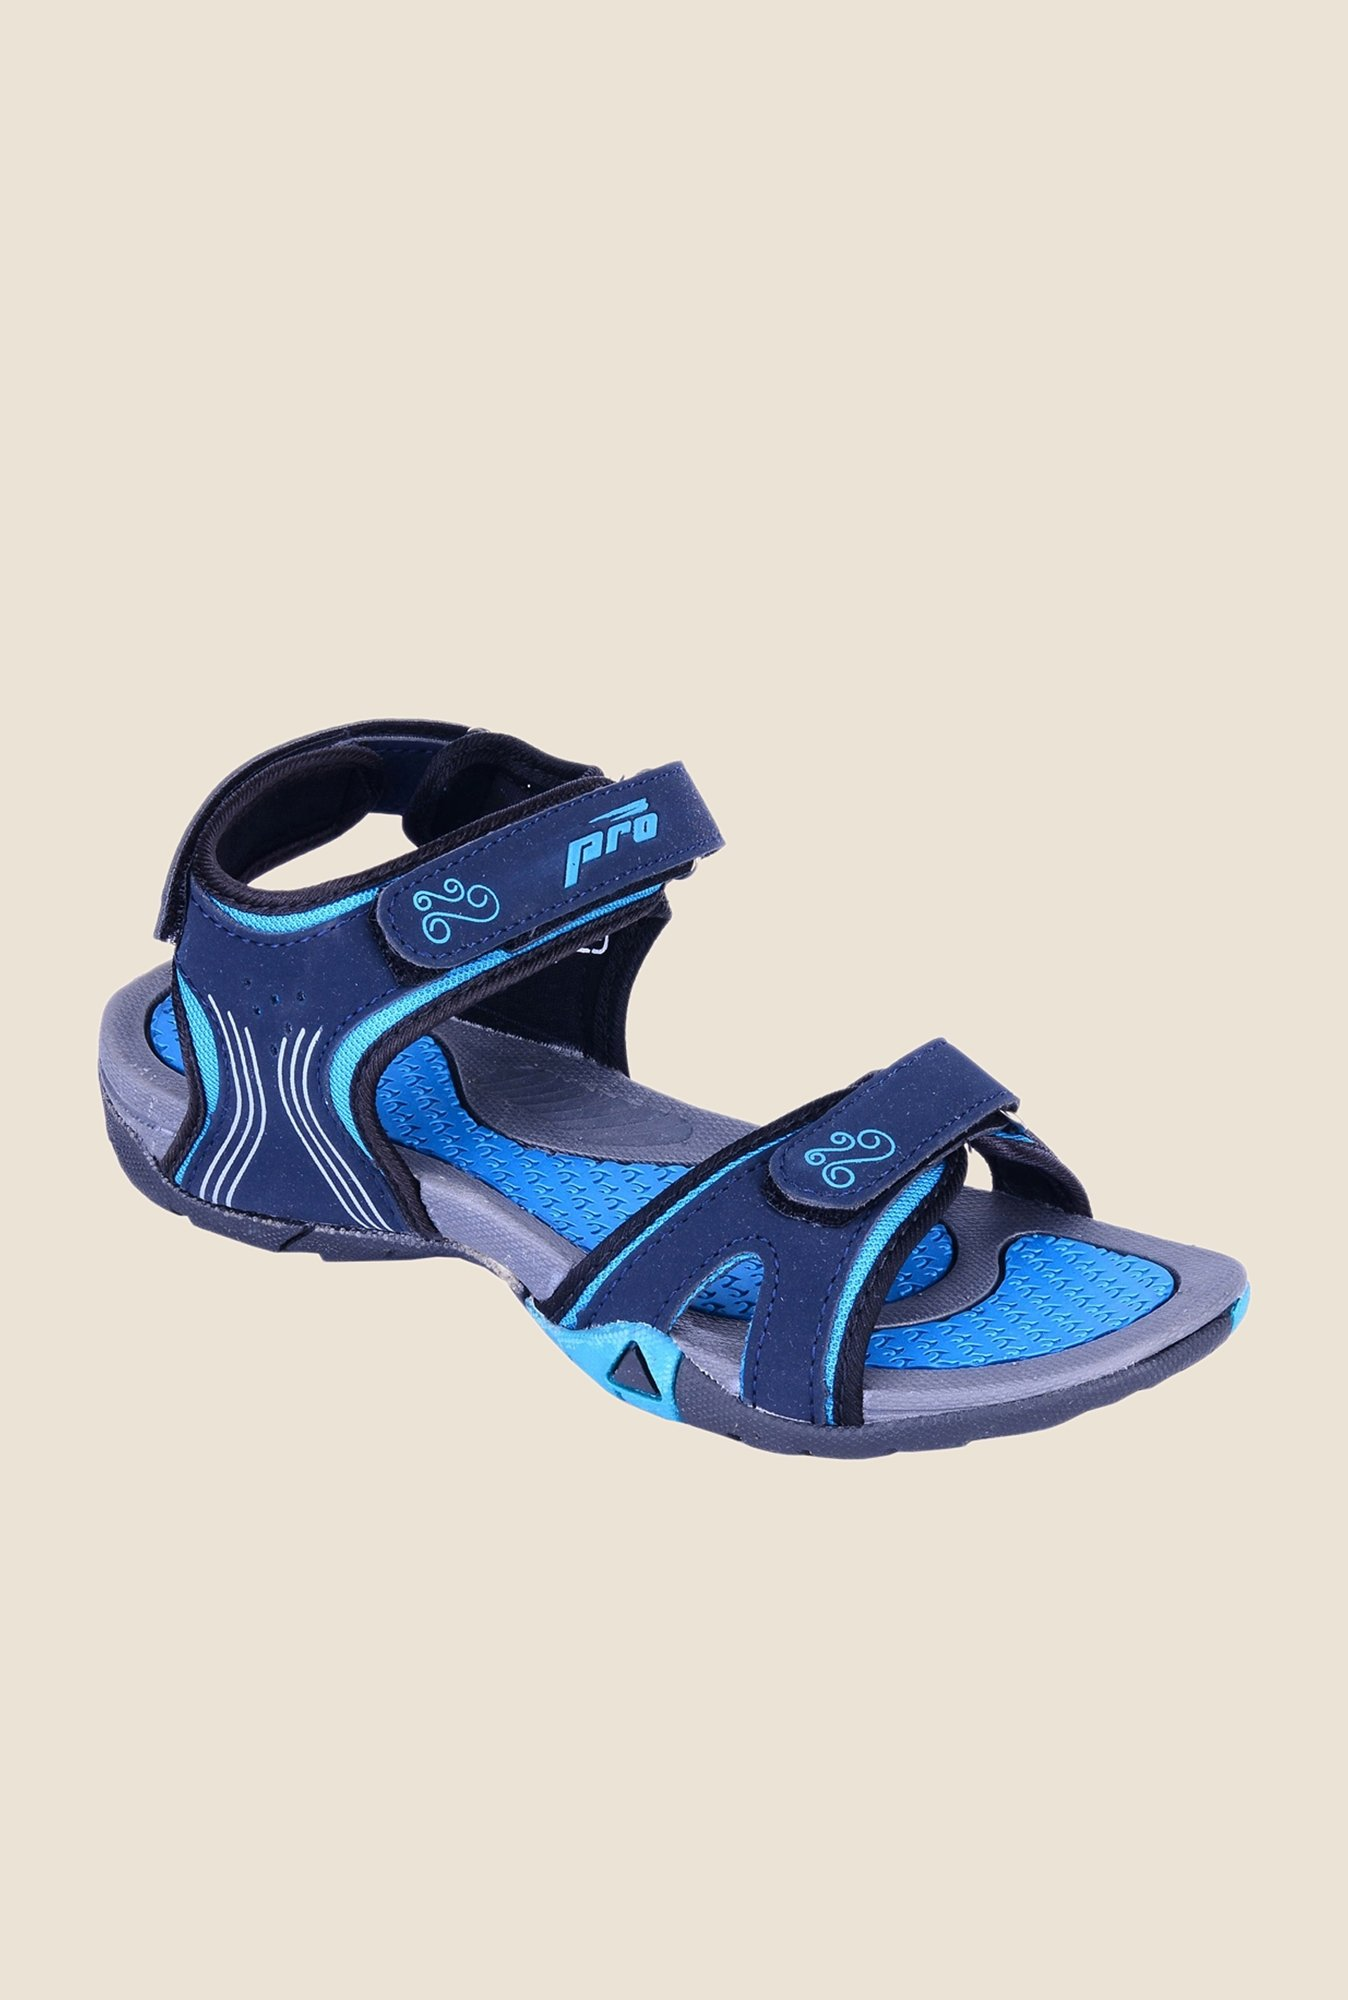 Khadim's Pro Navy Floater Sandals